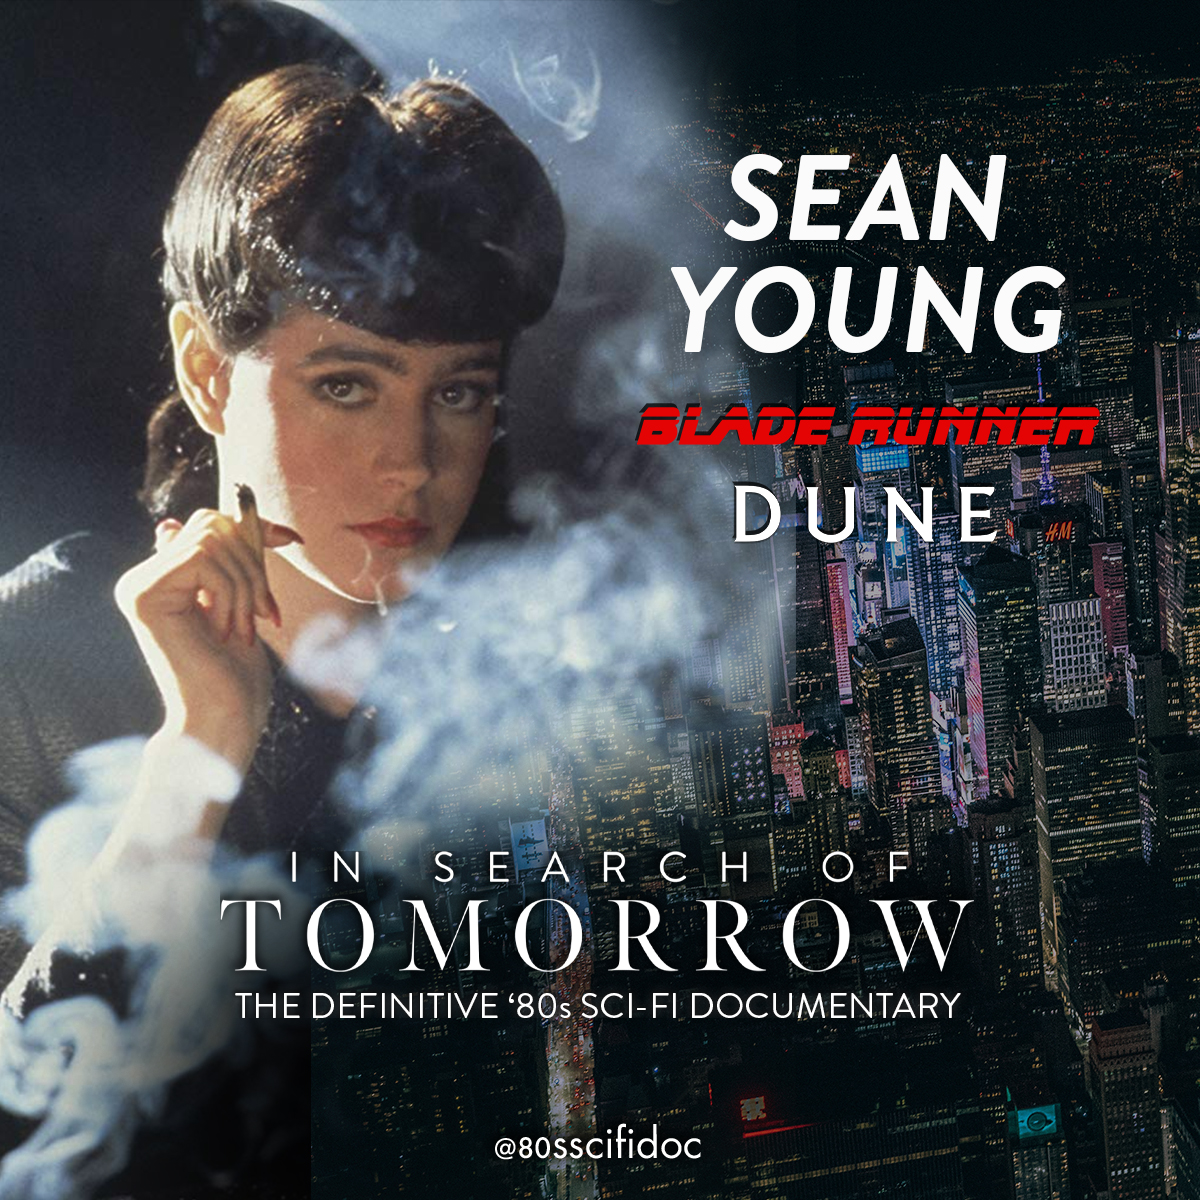 Sean Young, star of #BladeRunner and #DUNE, will be featured in the In Search of Tomorrow documentary. Join us to see her discuss being a part of these classic '80s Sci-Fi films. Follow @80sscifidoc for more. #80s #SciFi #movies #SeanYoungpic.twitter.com/uE7J0q7oh5